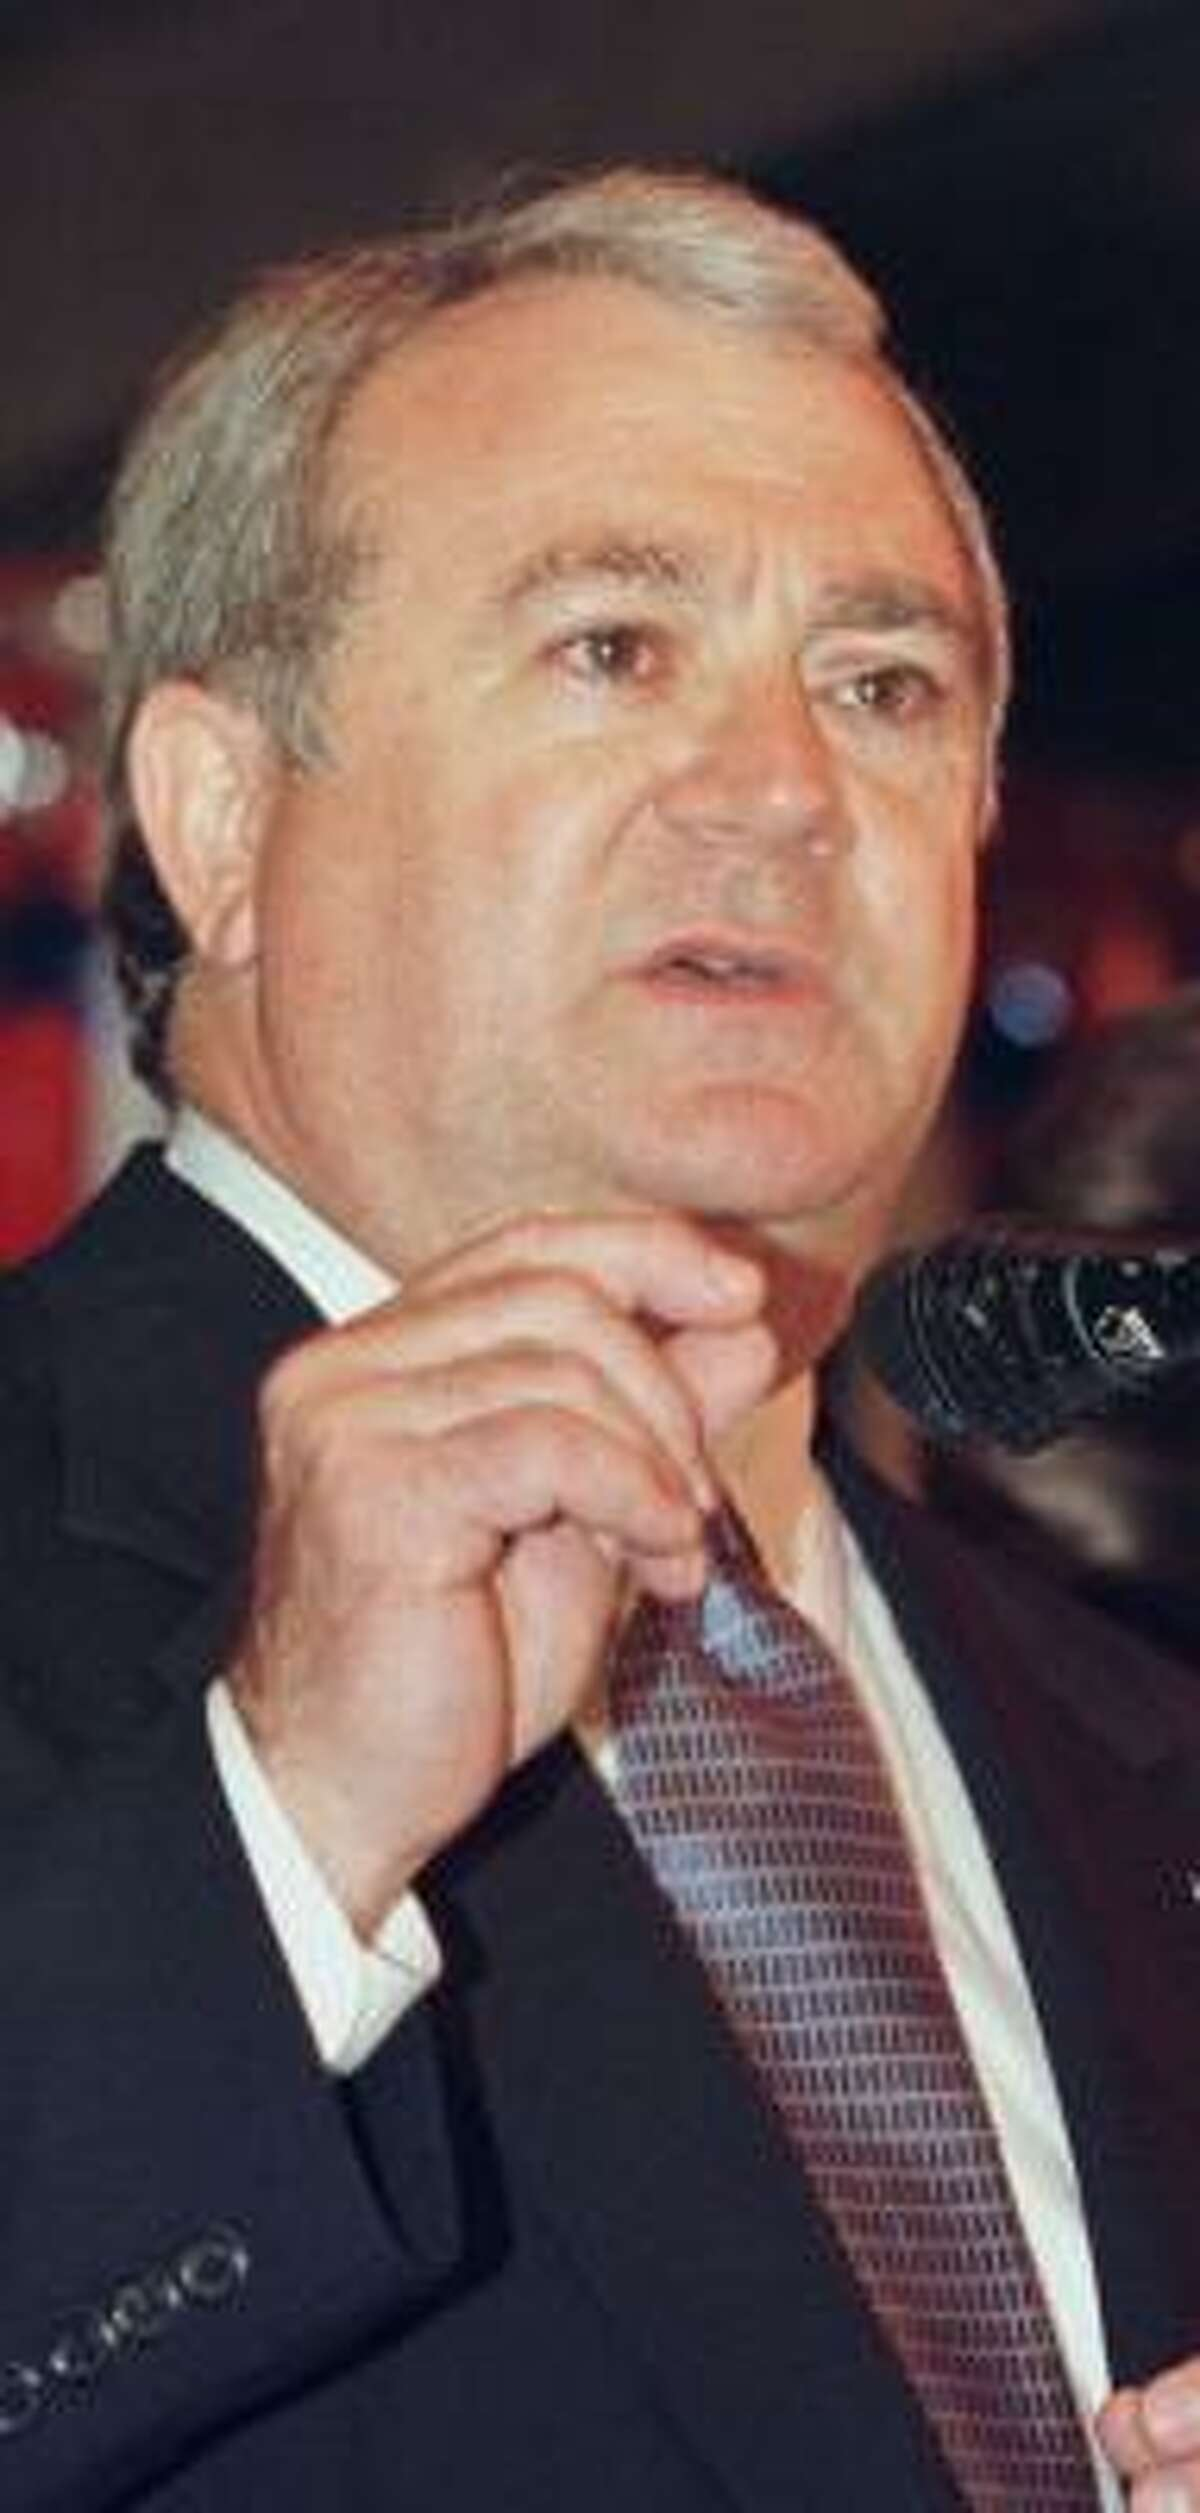 Jim Mattox served in Congress before winning two terms as Texas attorney general in the 1980s.